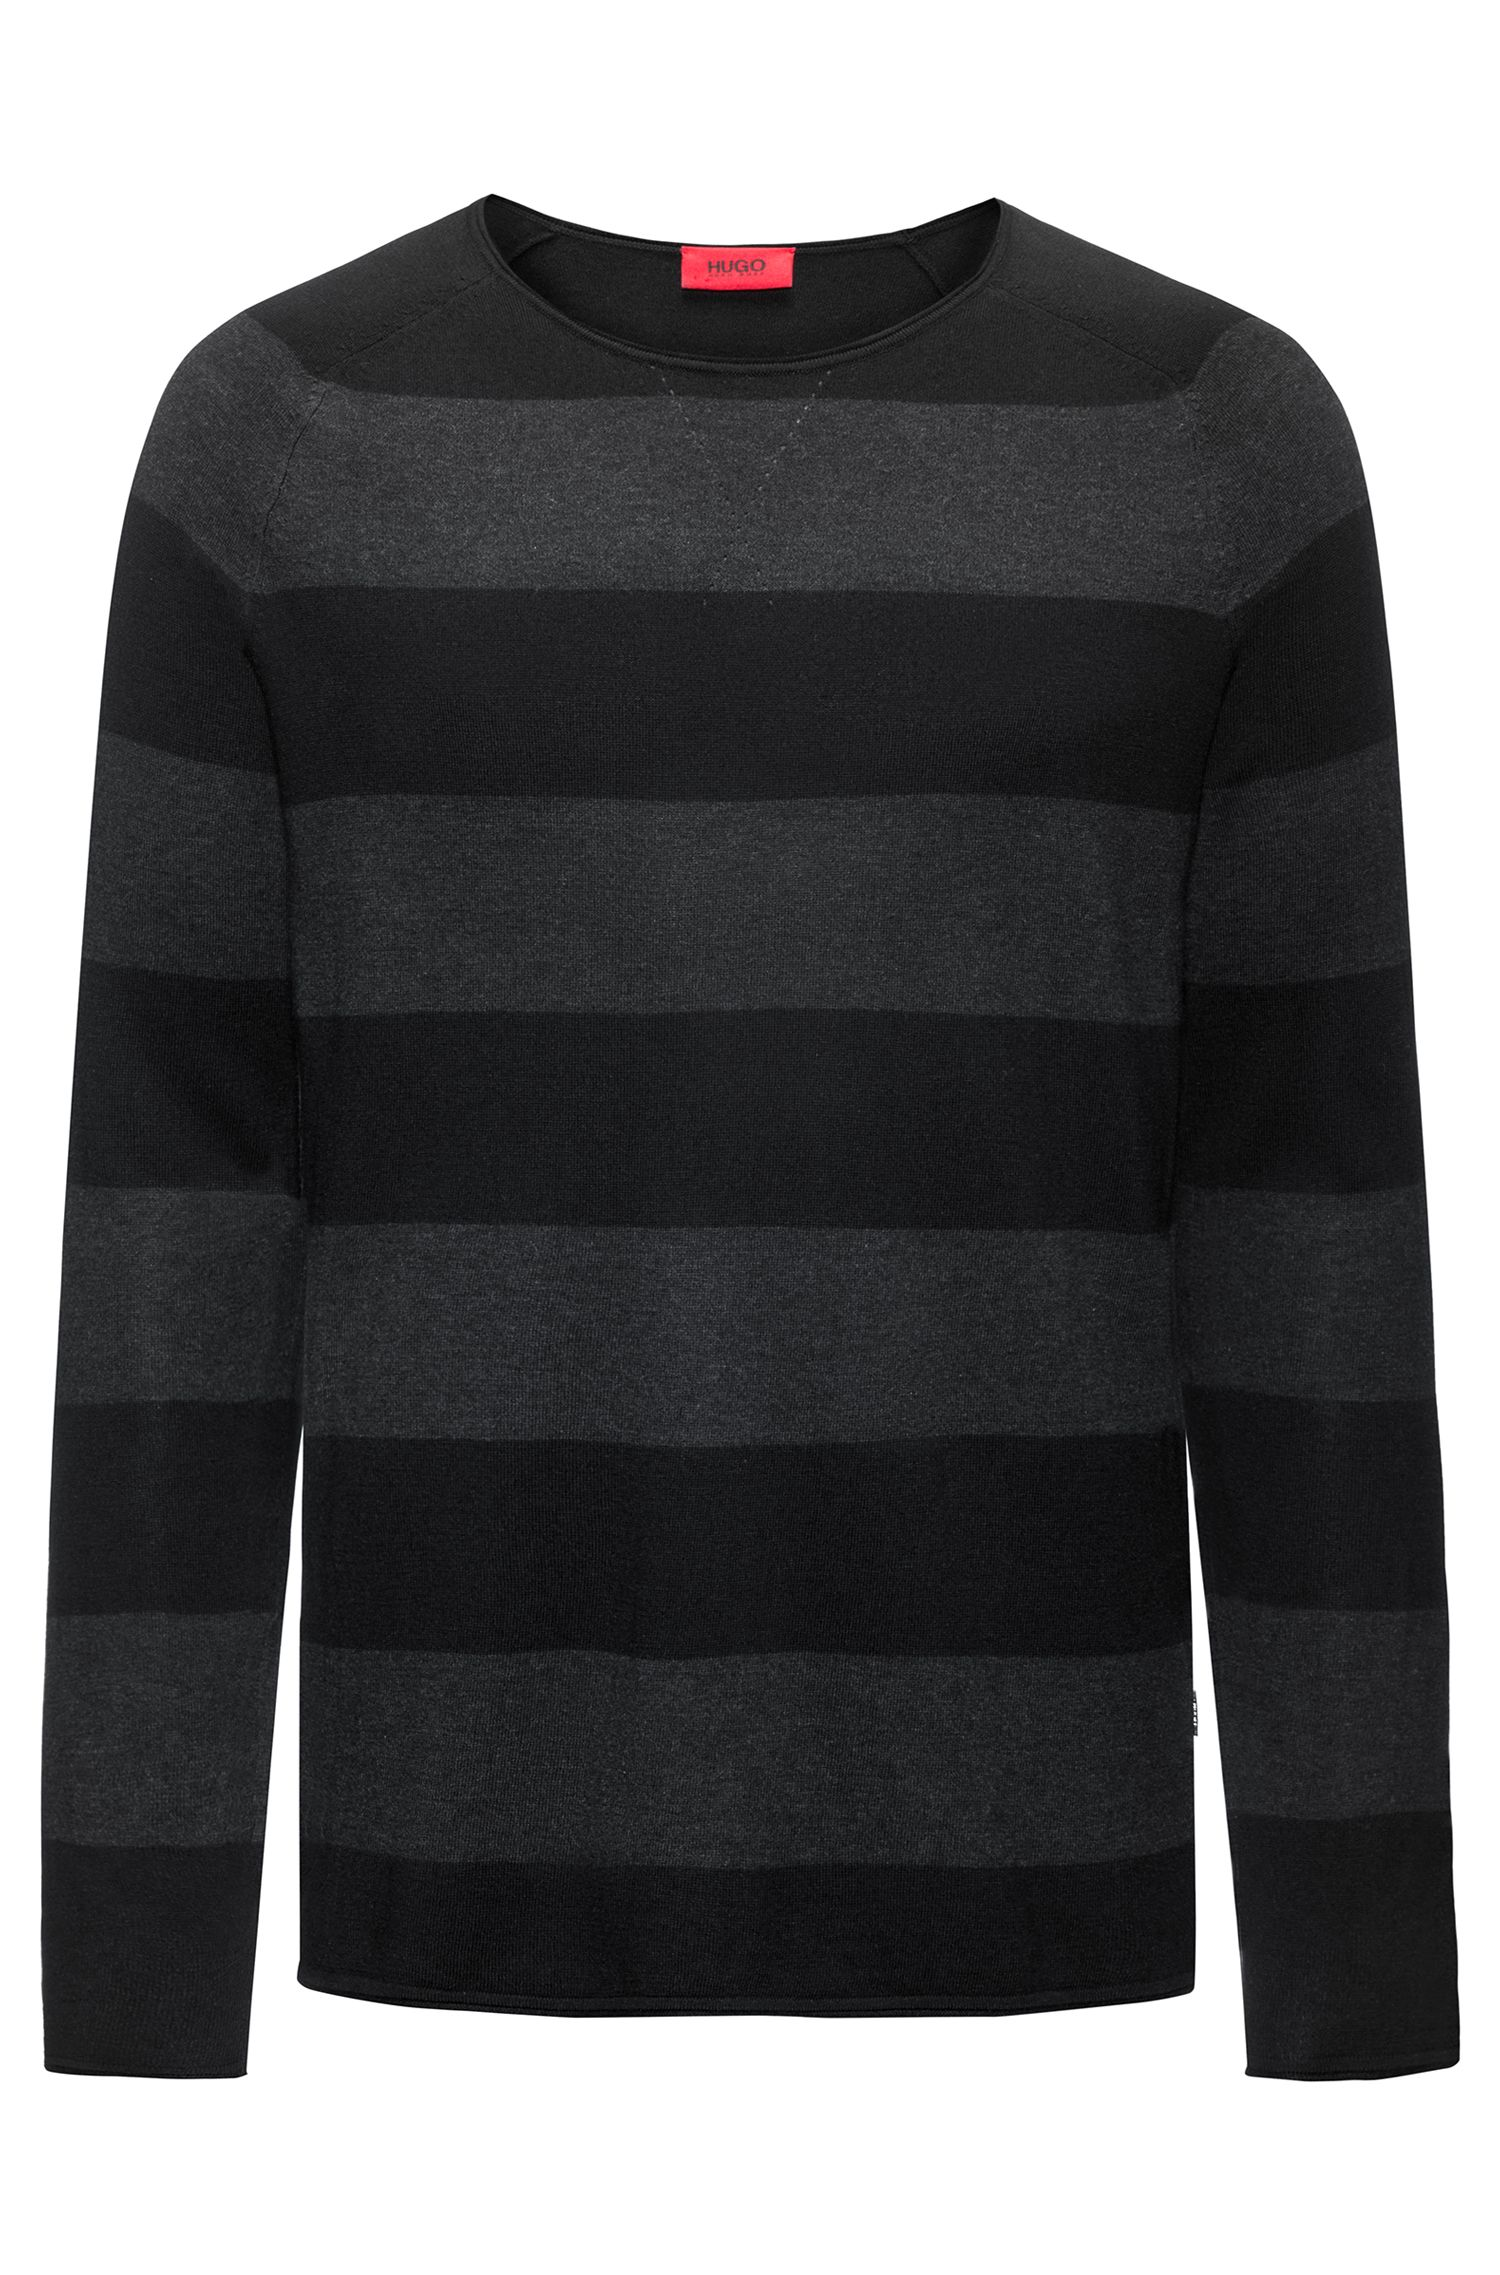 Block-stripe crew-neck sweater in a cotton blend